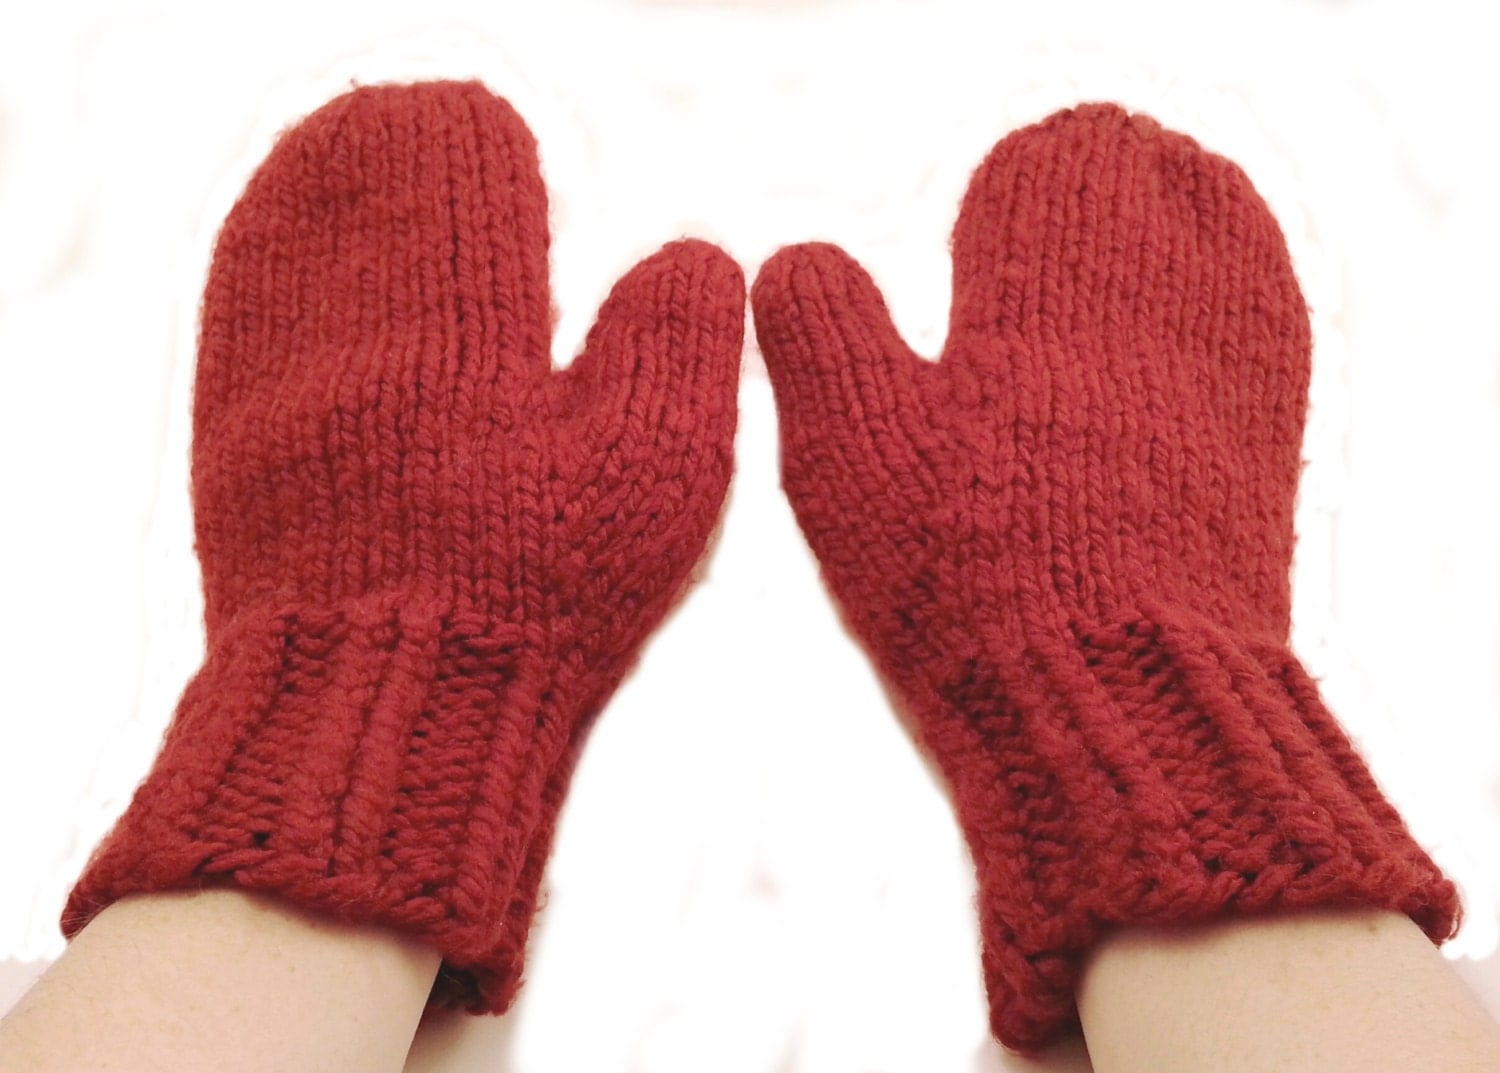 Knitting Mittens : Chunky knit mittens wool thick